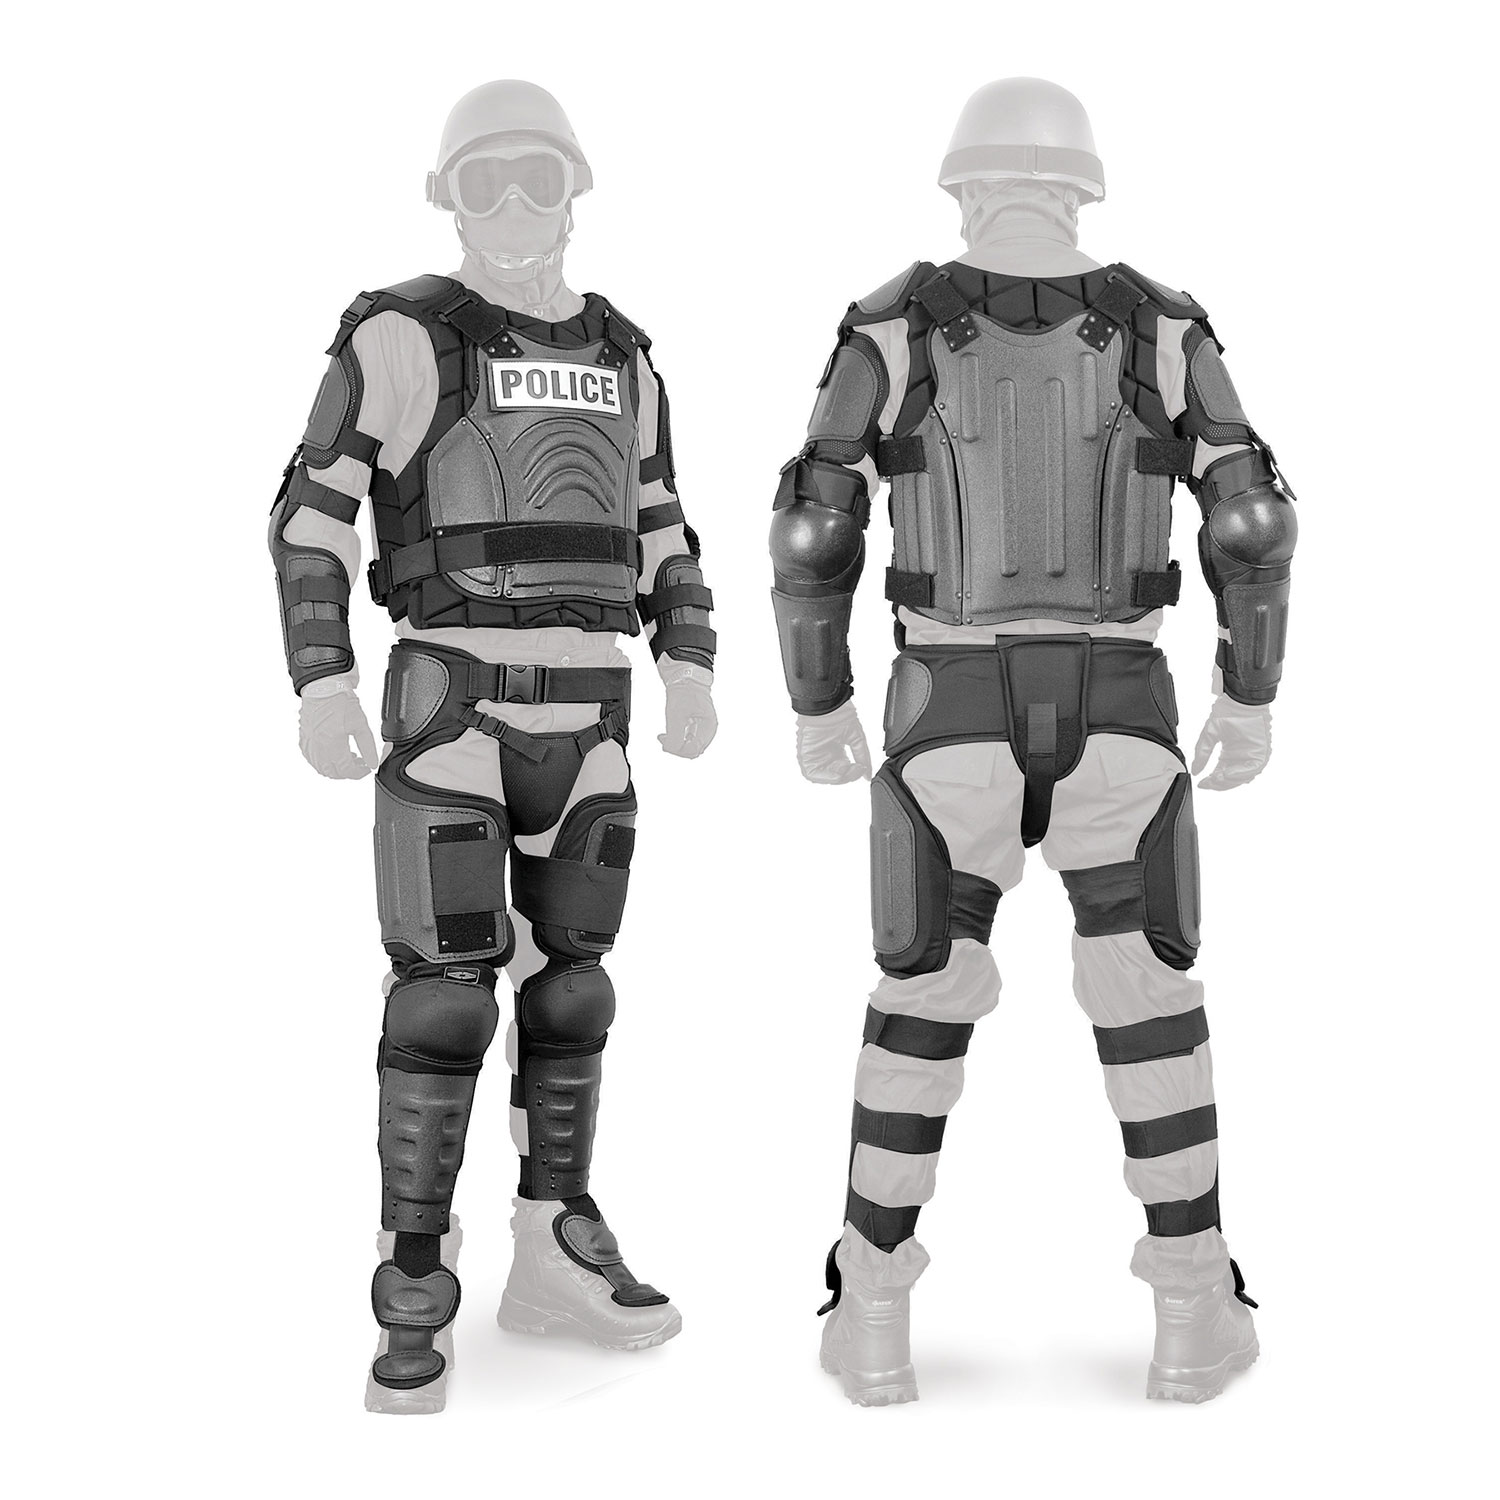 Damascus FlexForce Riot Control Suit